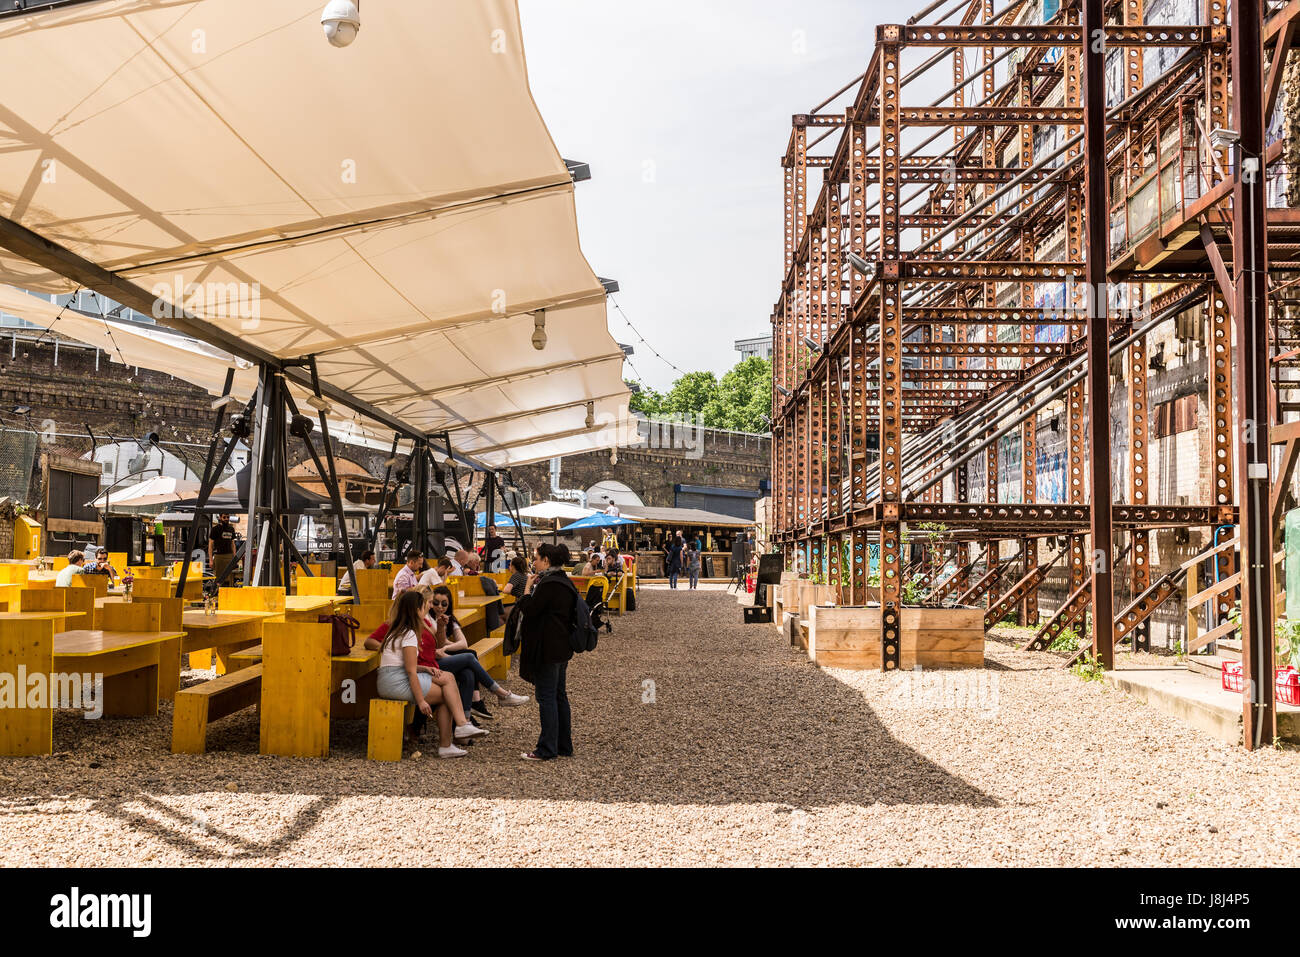 Mercato Metropolitano, a disused paper factory, in Elephant and Castle, is now a market space and lifestyle hub - Stock Image